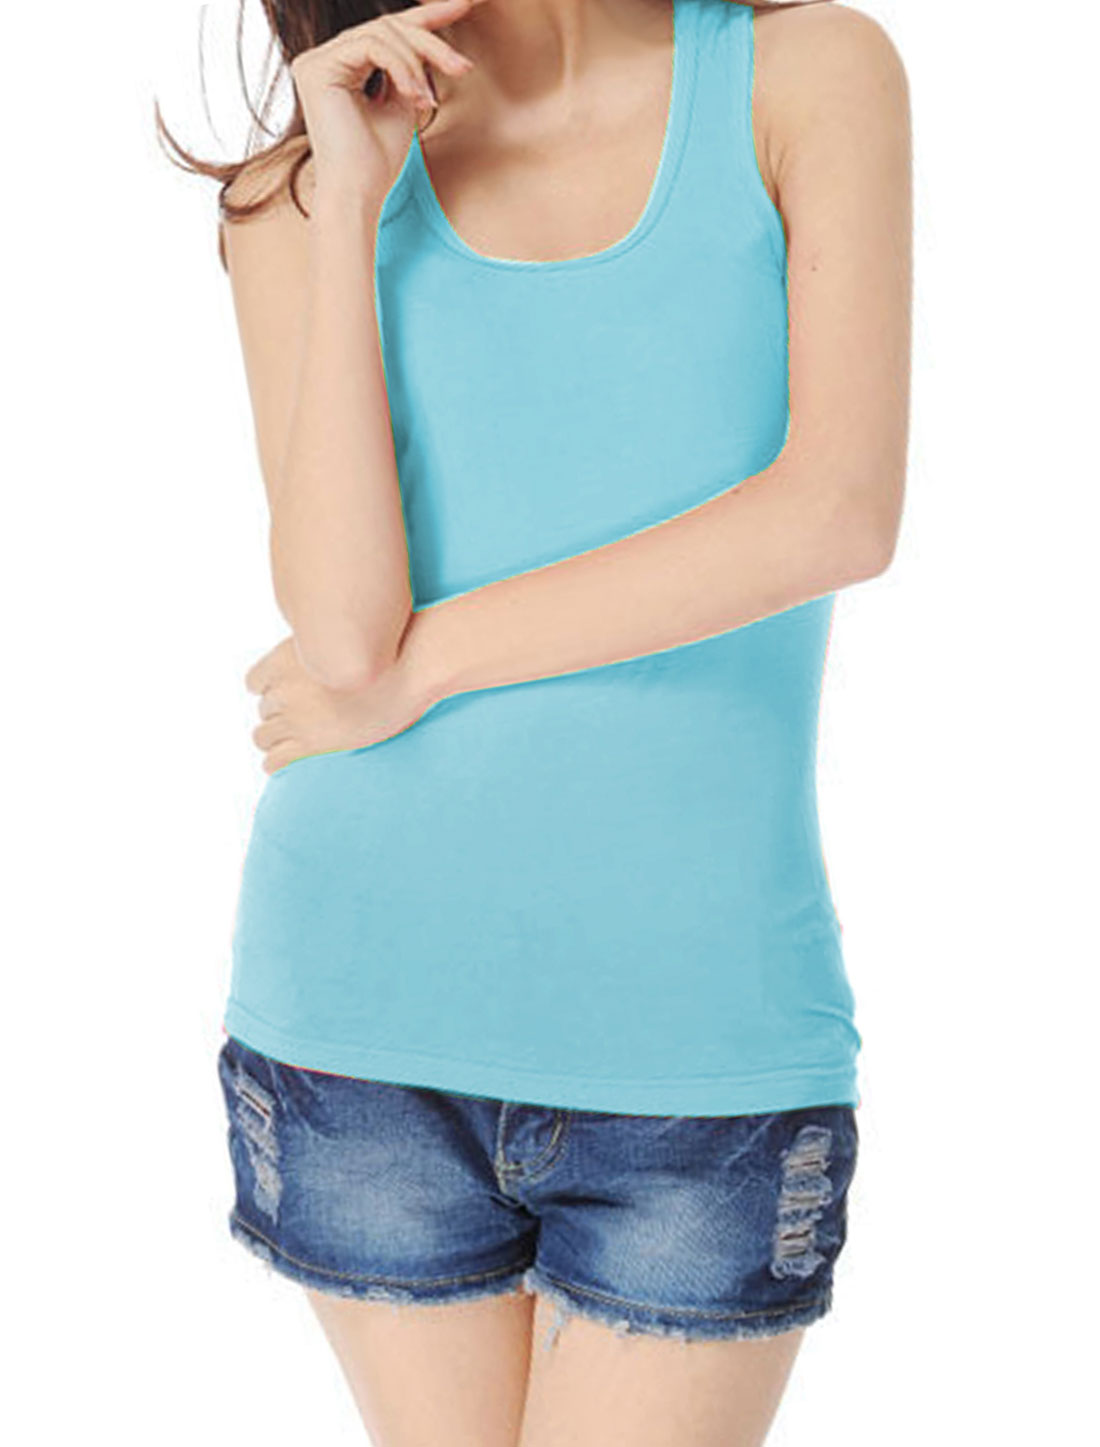 Woman Ribbing Pure Blue Stretch Closefitting Racer Back Tank Top XS